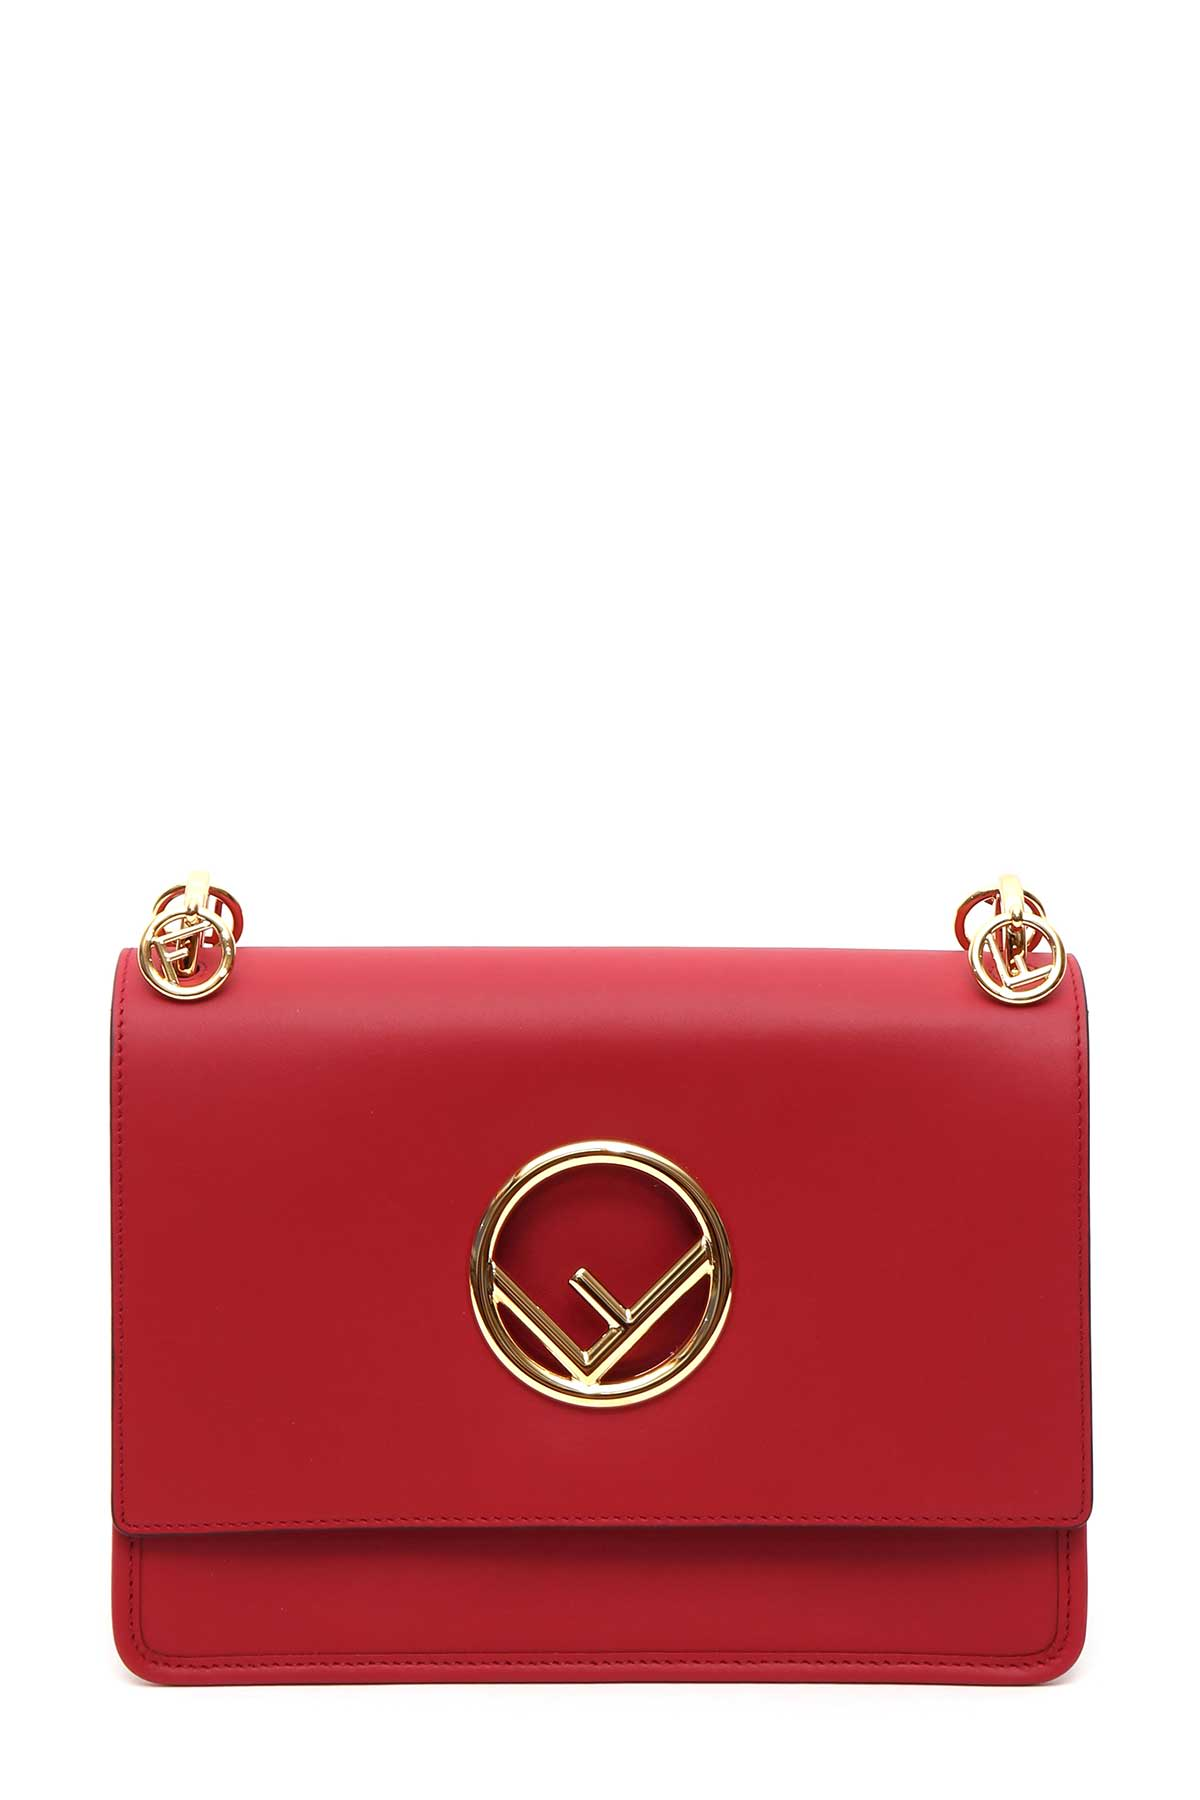 FENDI KAN I CALFSKIN LEATHER SHOULDER BAG - RED